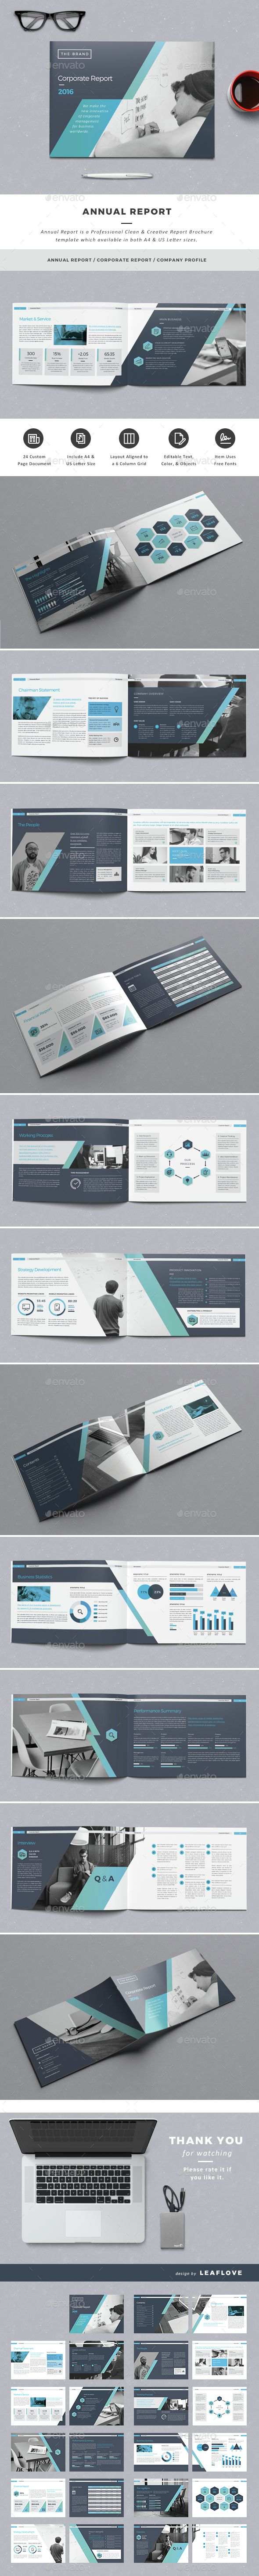 Annual Report Landscape / Clean & Creative Report Brochure Template